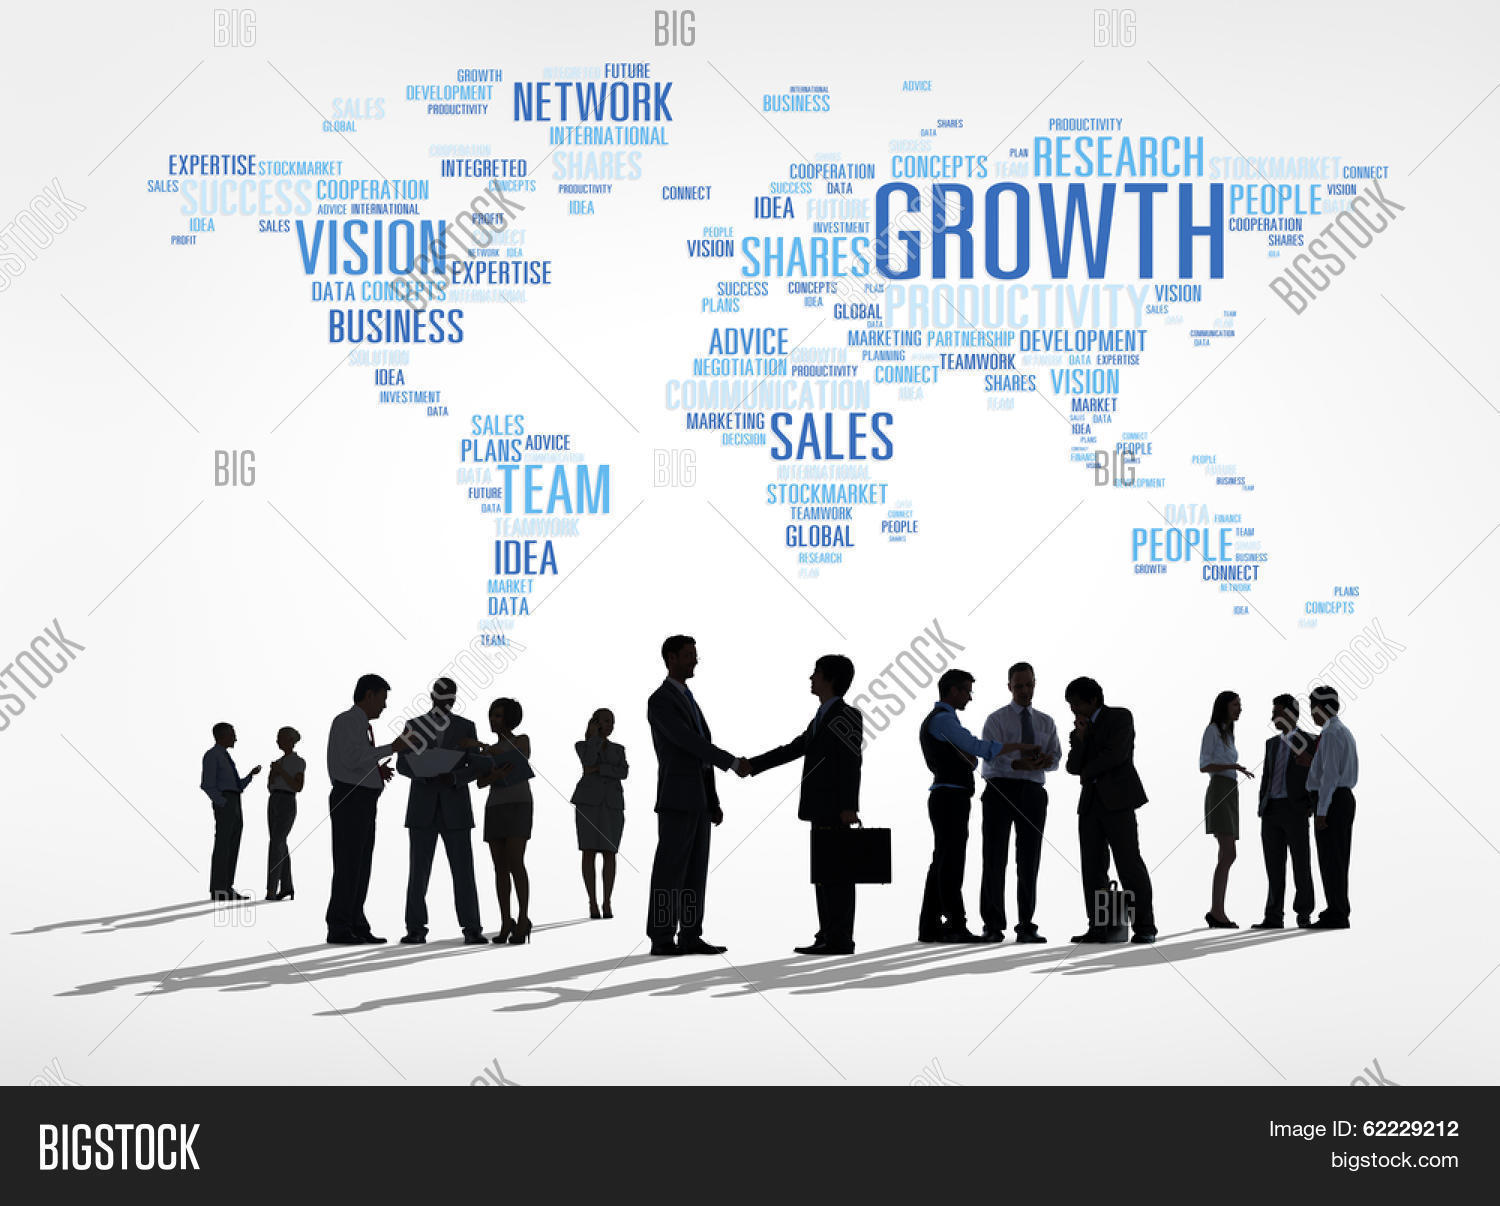 Successful global business growth image photo bigstock for Global design consultancy